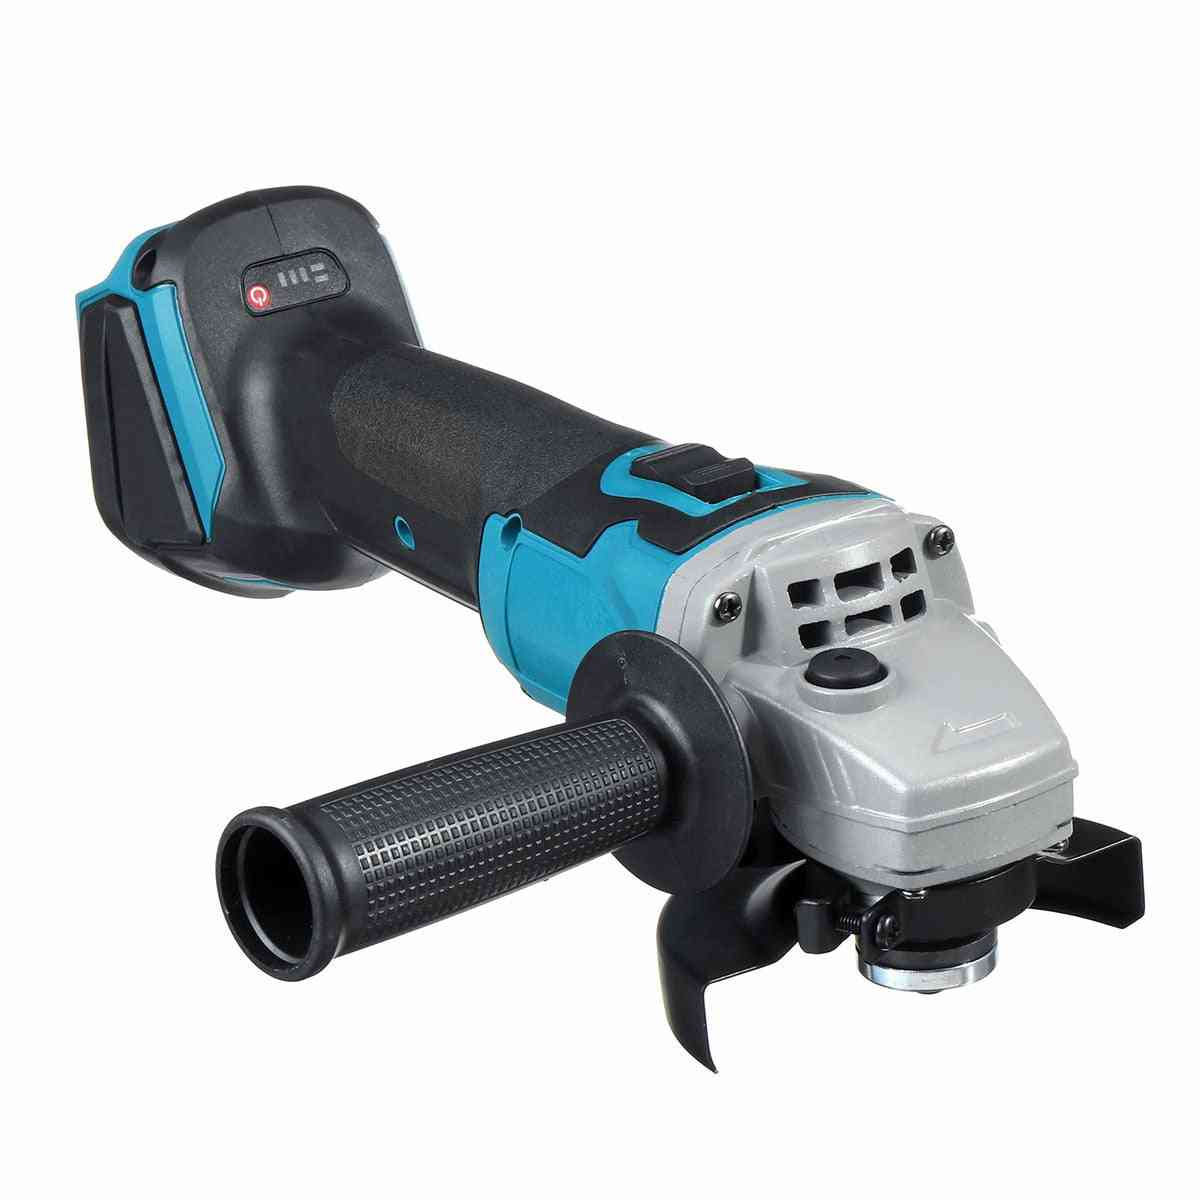 Brushless Electric Angle Grinder Grinding Machine